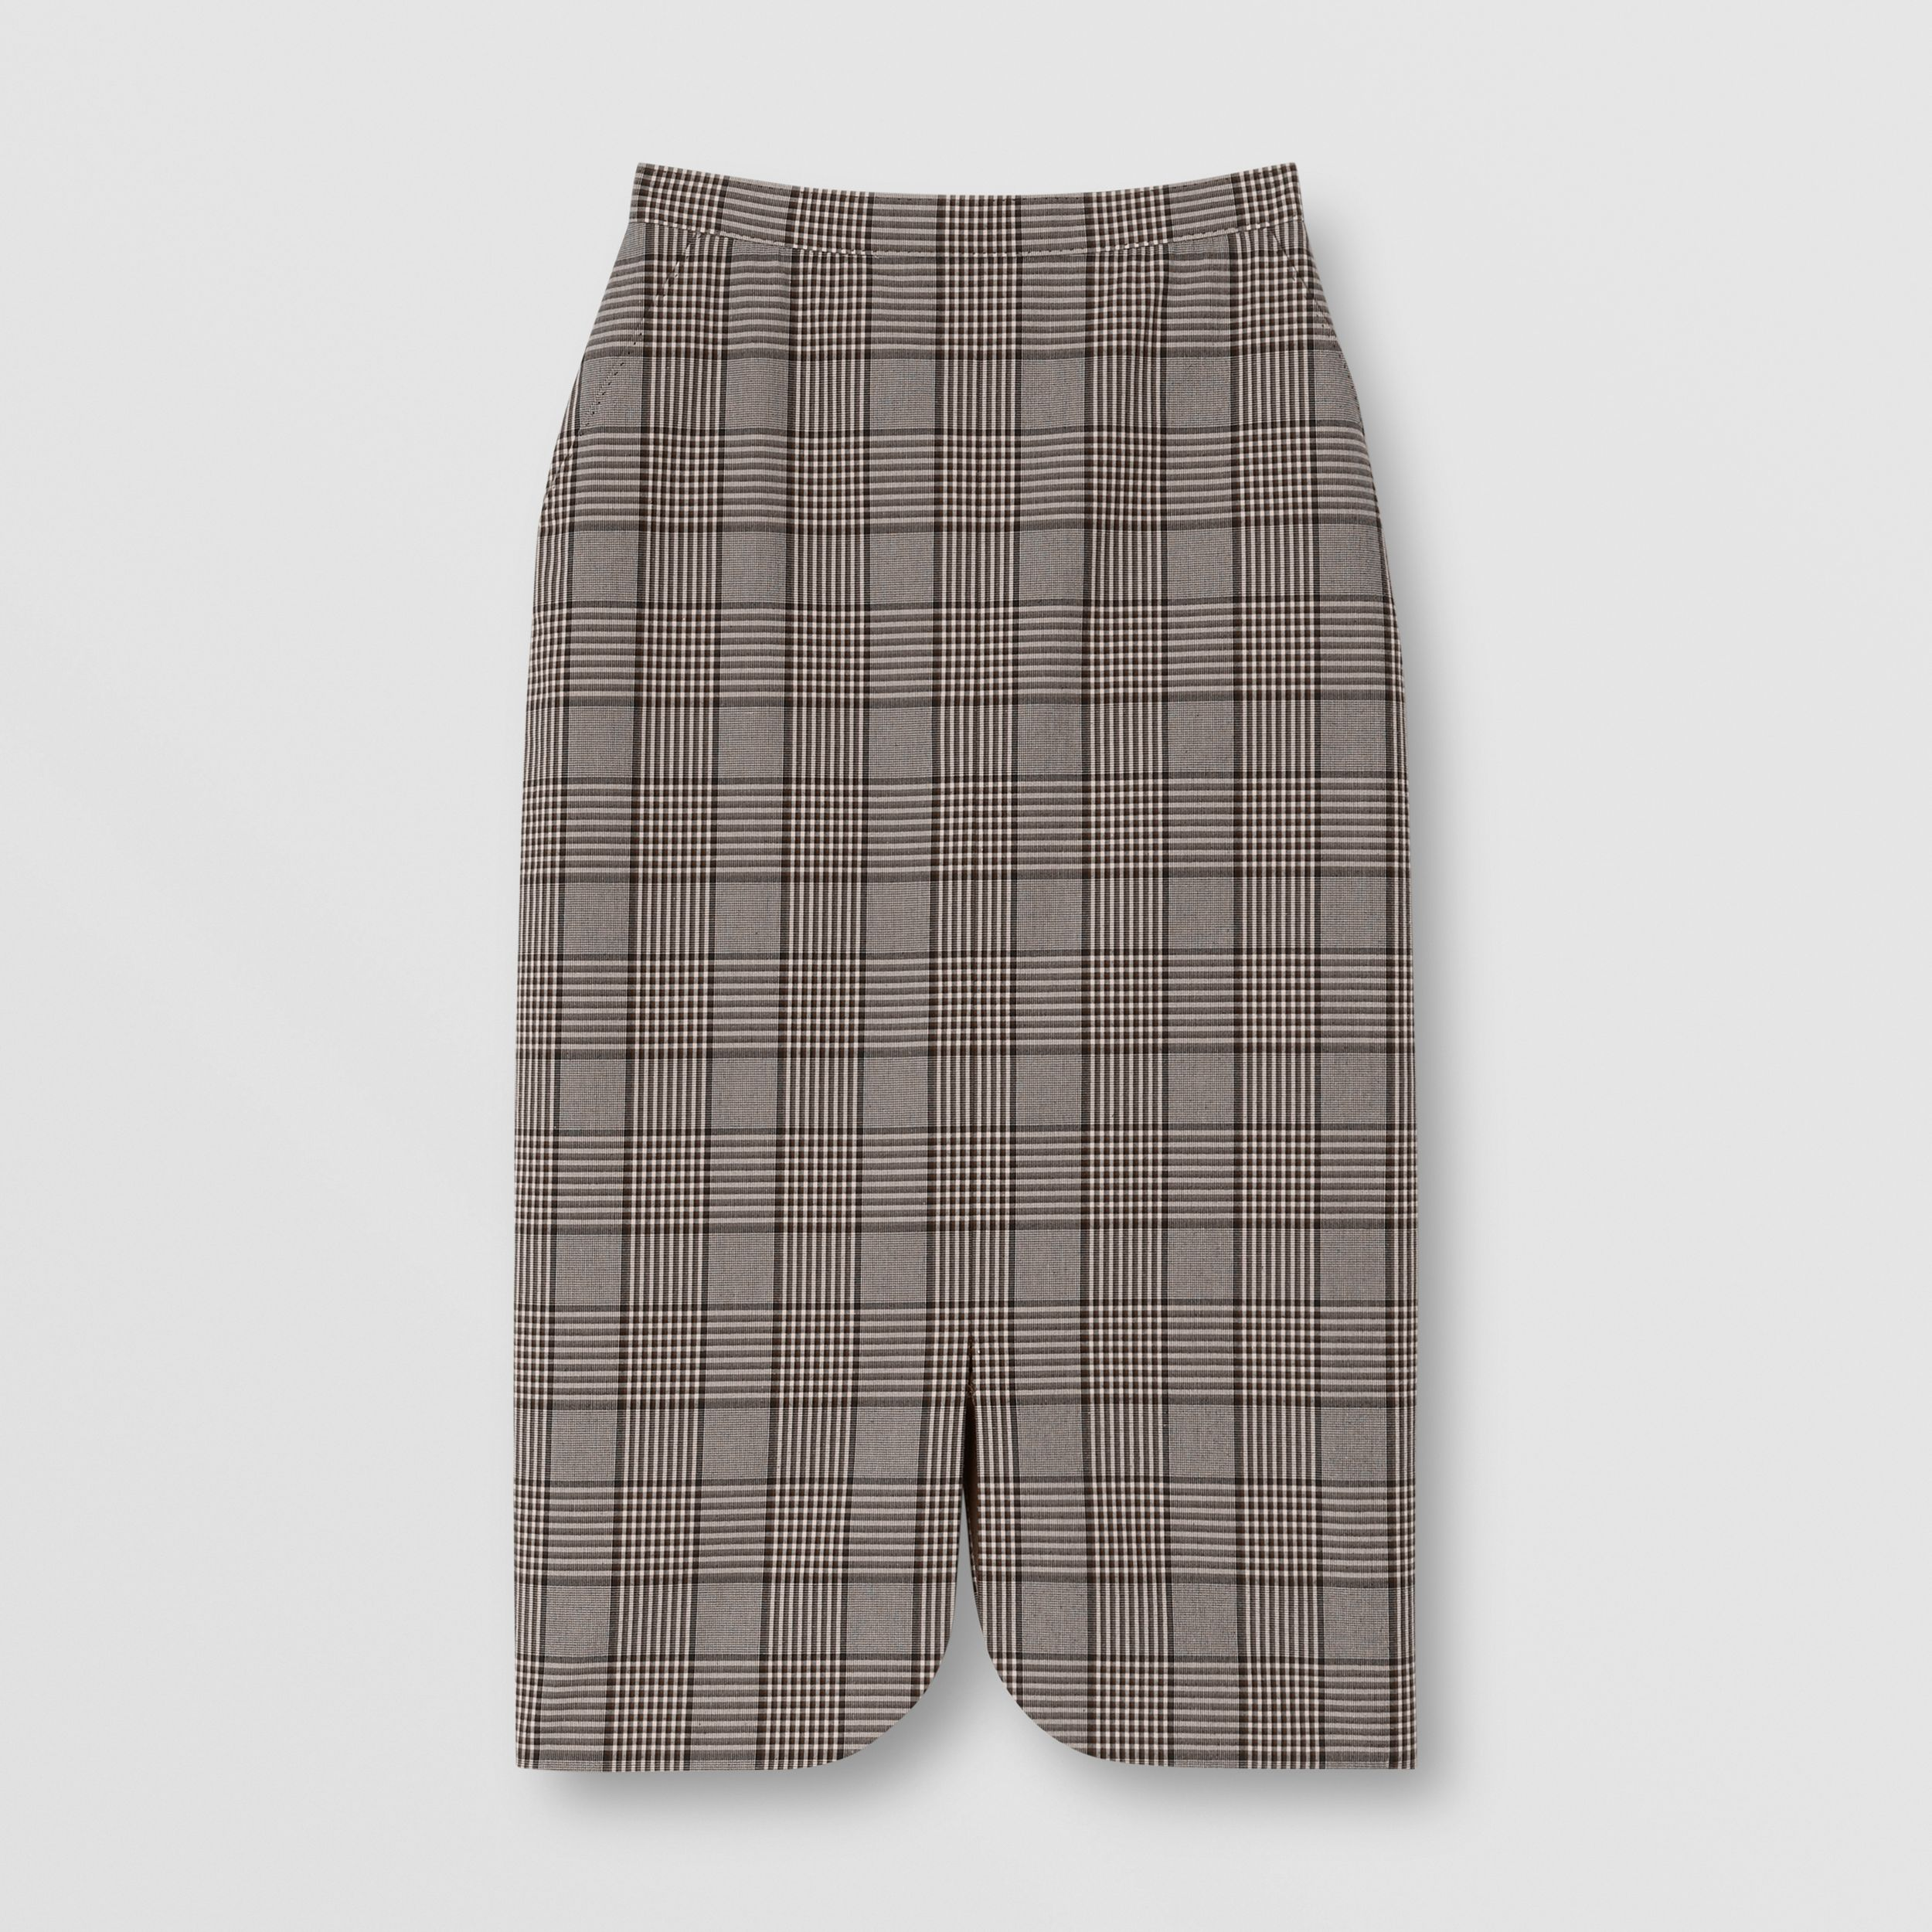 Check Wool Pencil Skirt in Deep Taupe - Women | Burberry Hong Kong S.A.R. - 4